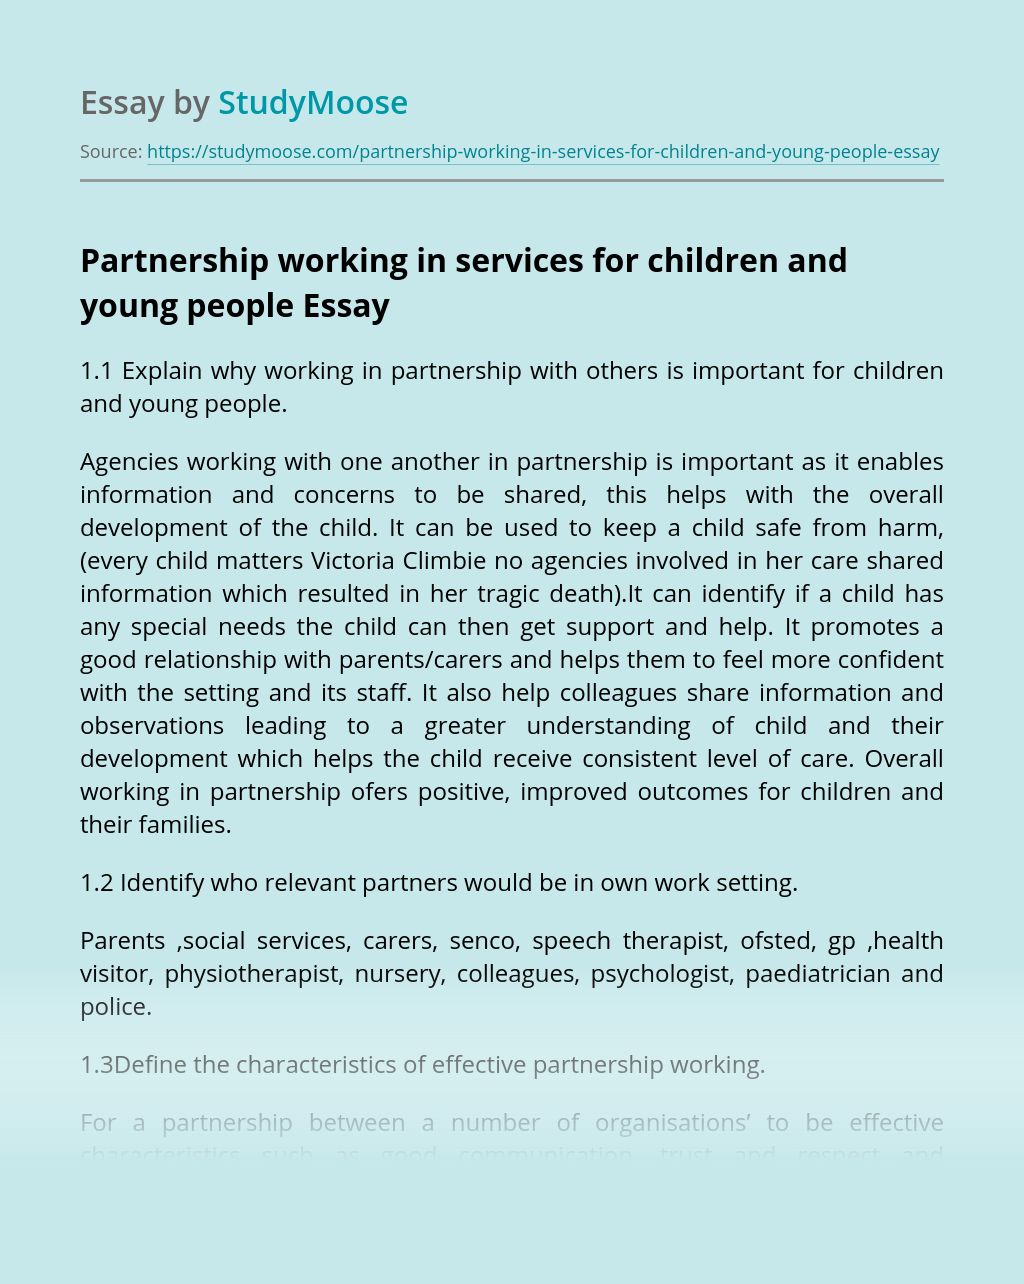 Partnership working in services for children and young people